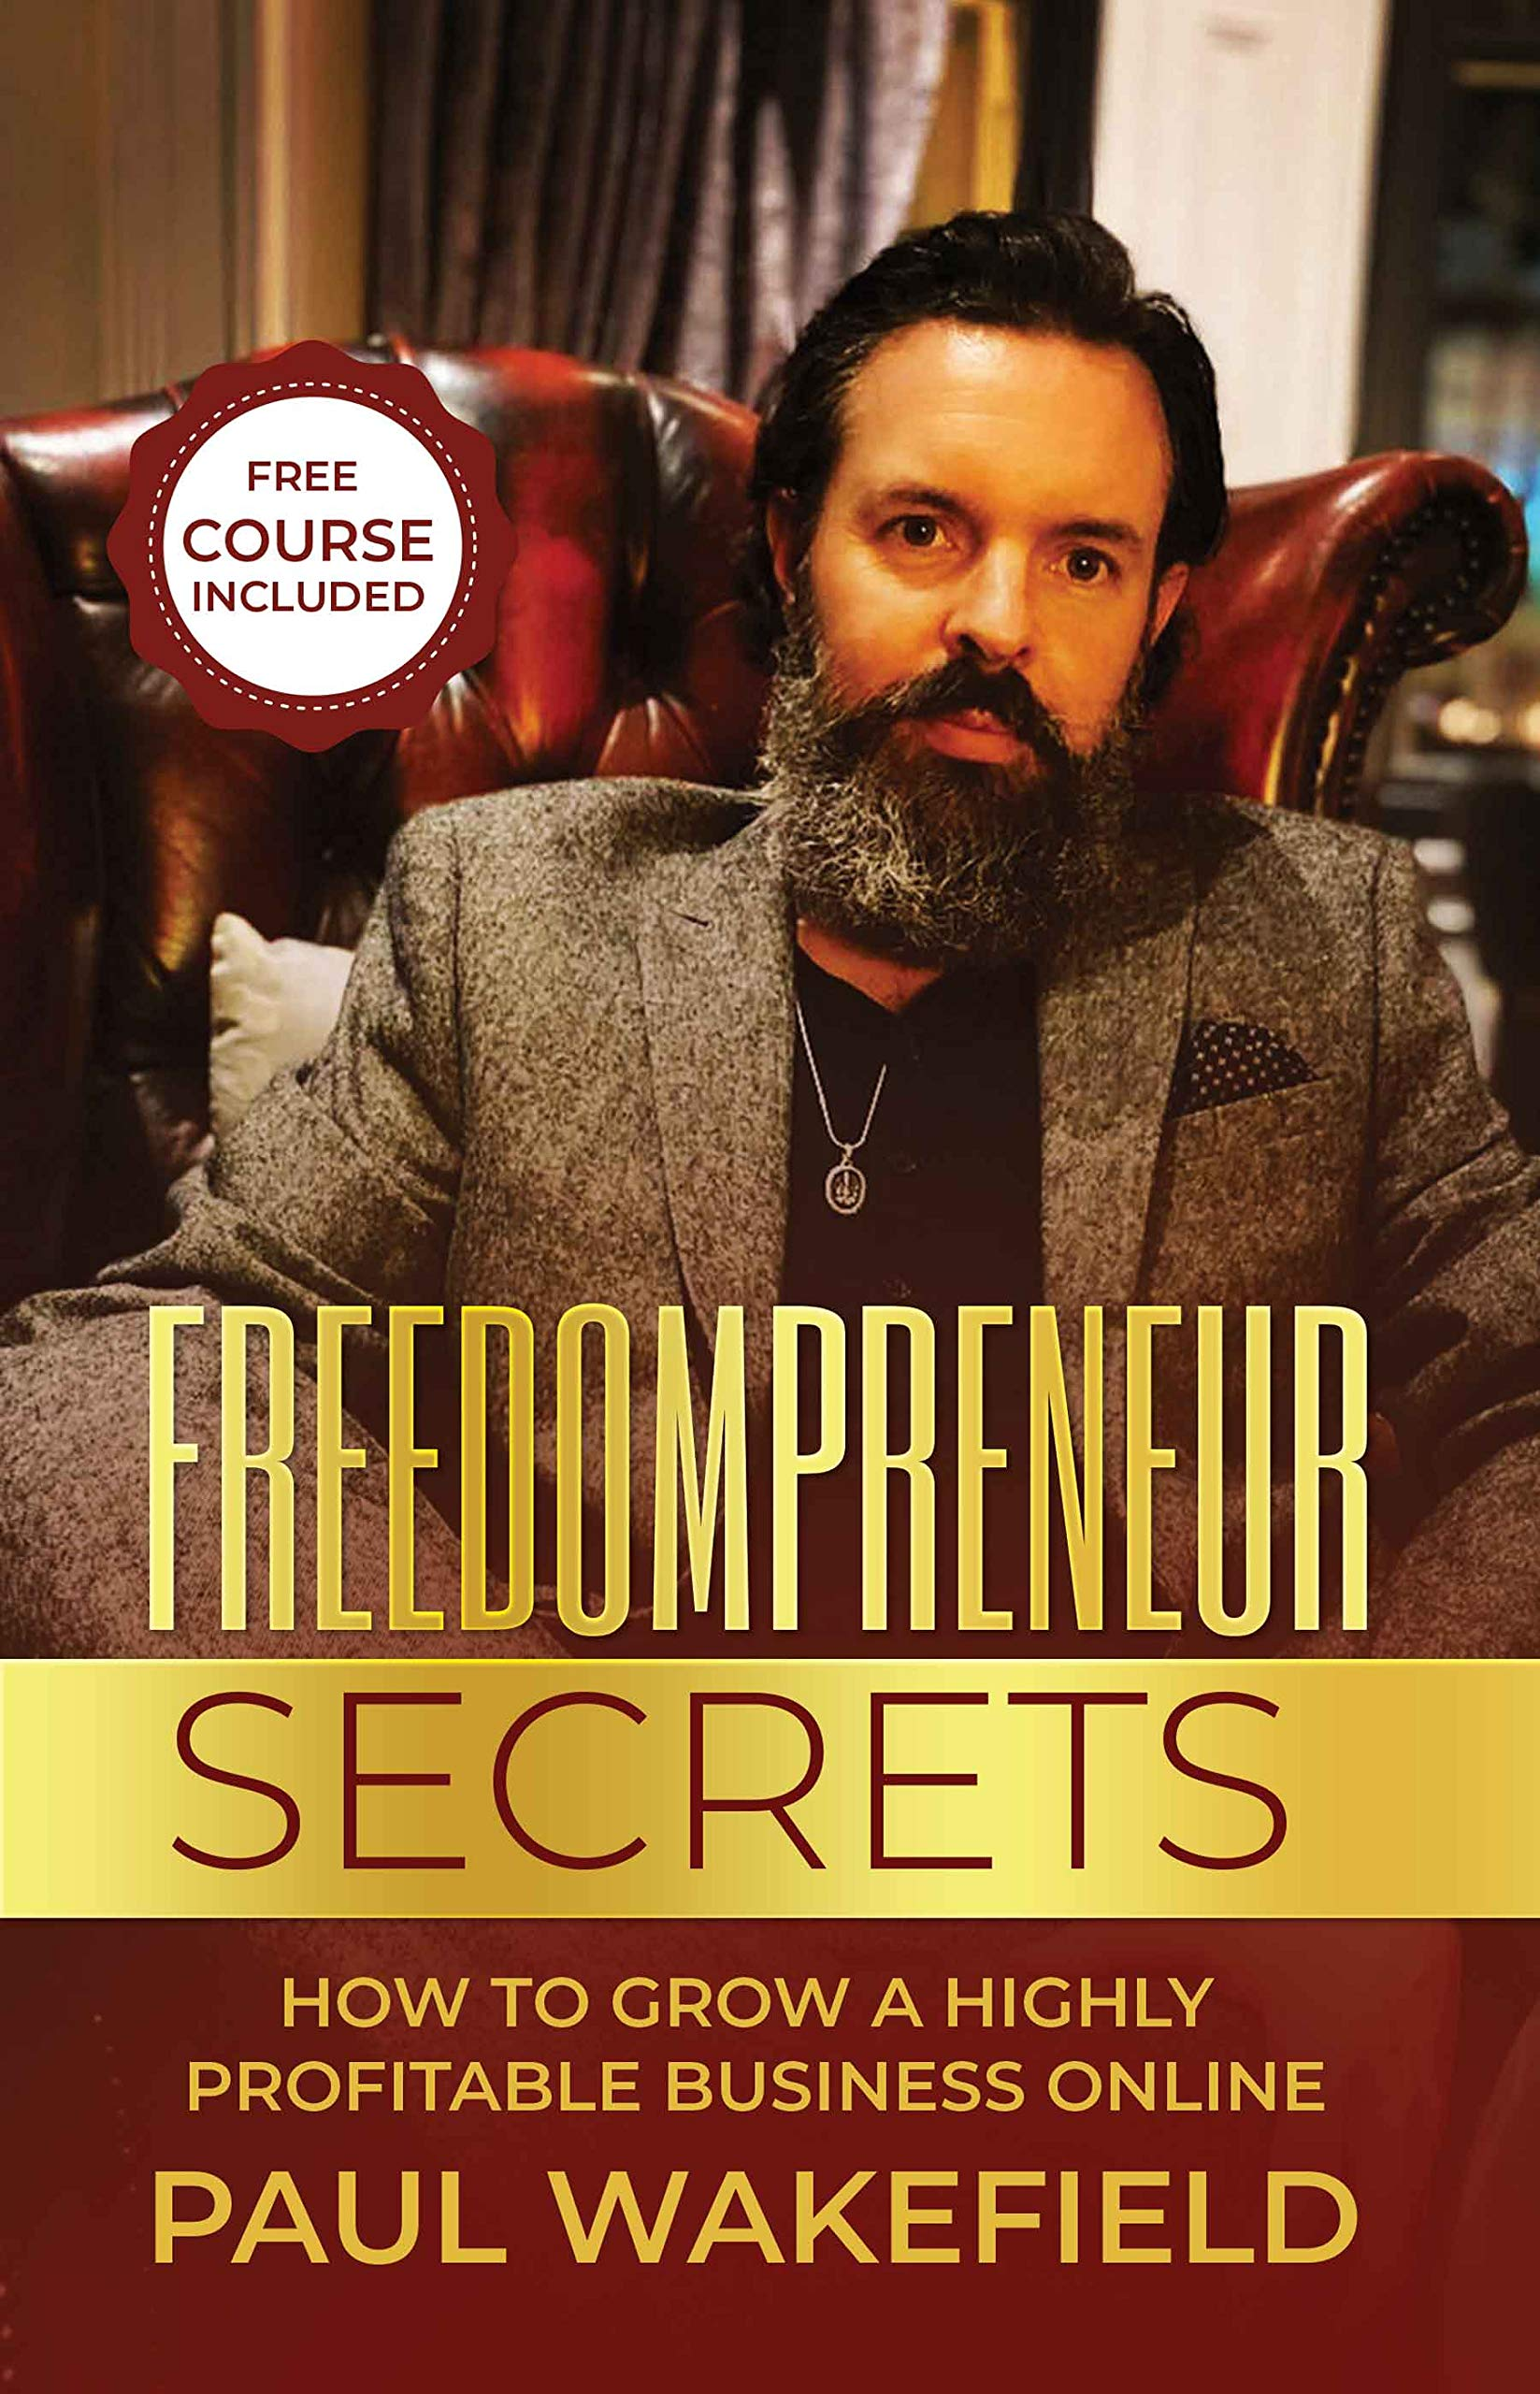 FREEDOMPRENEUR secrets: How to Grow a Highly Profitable Business Online